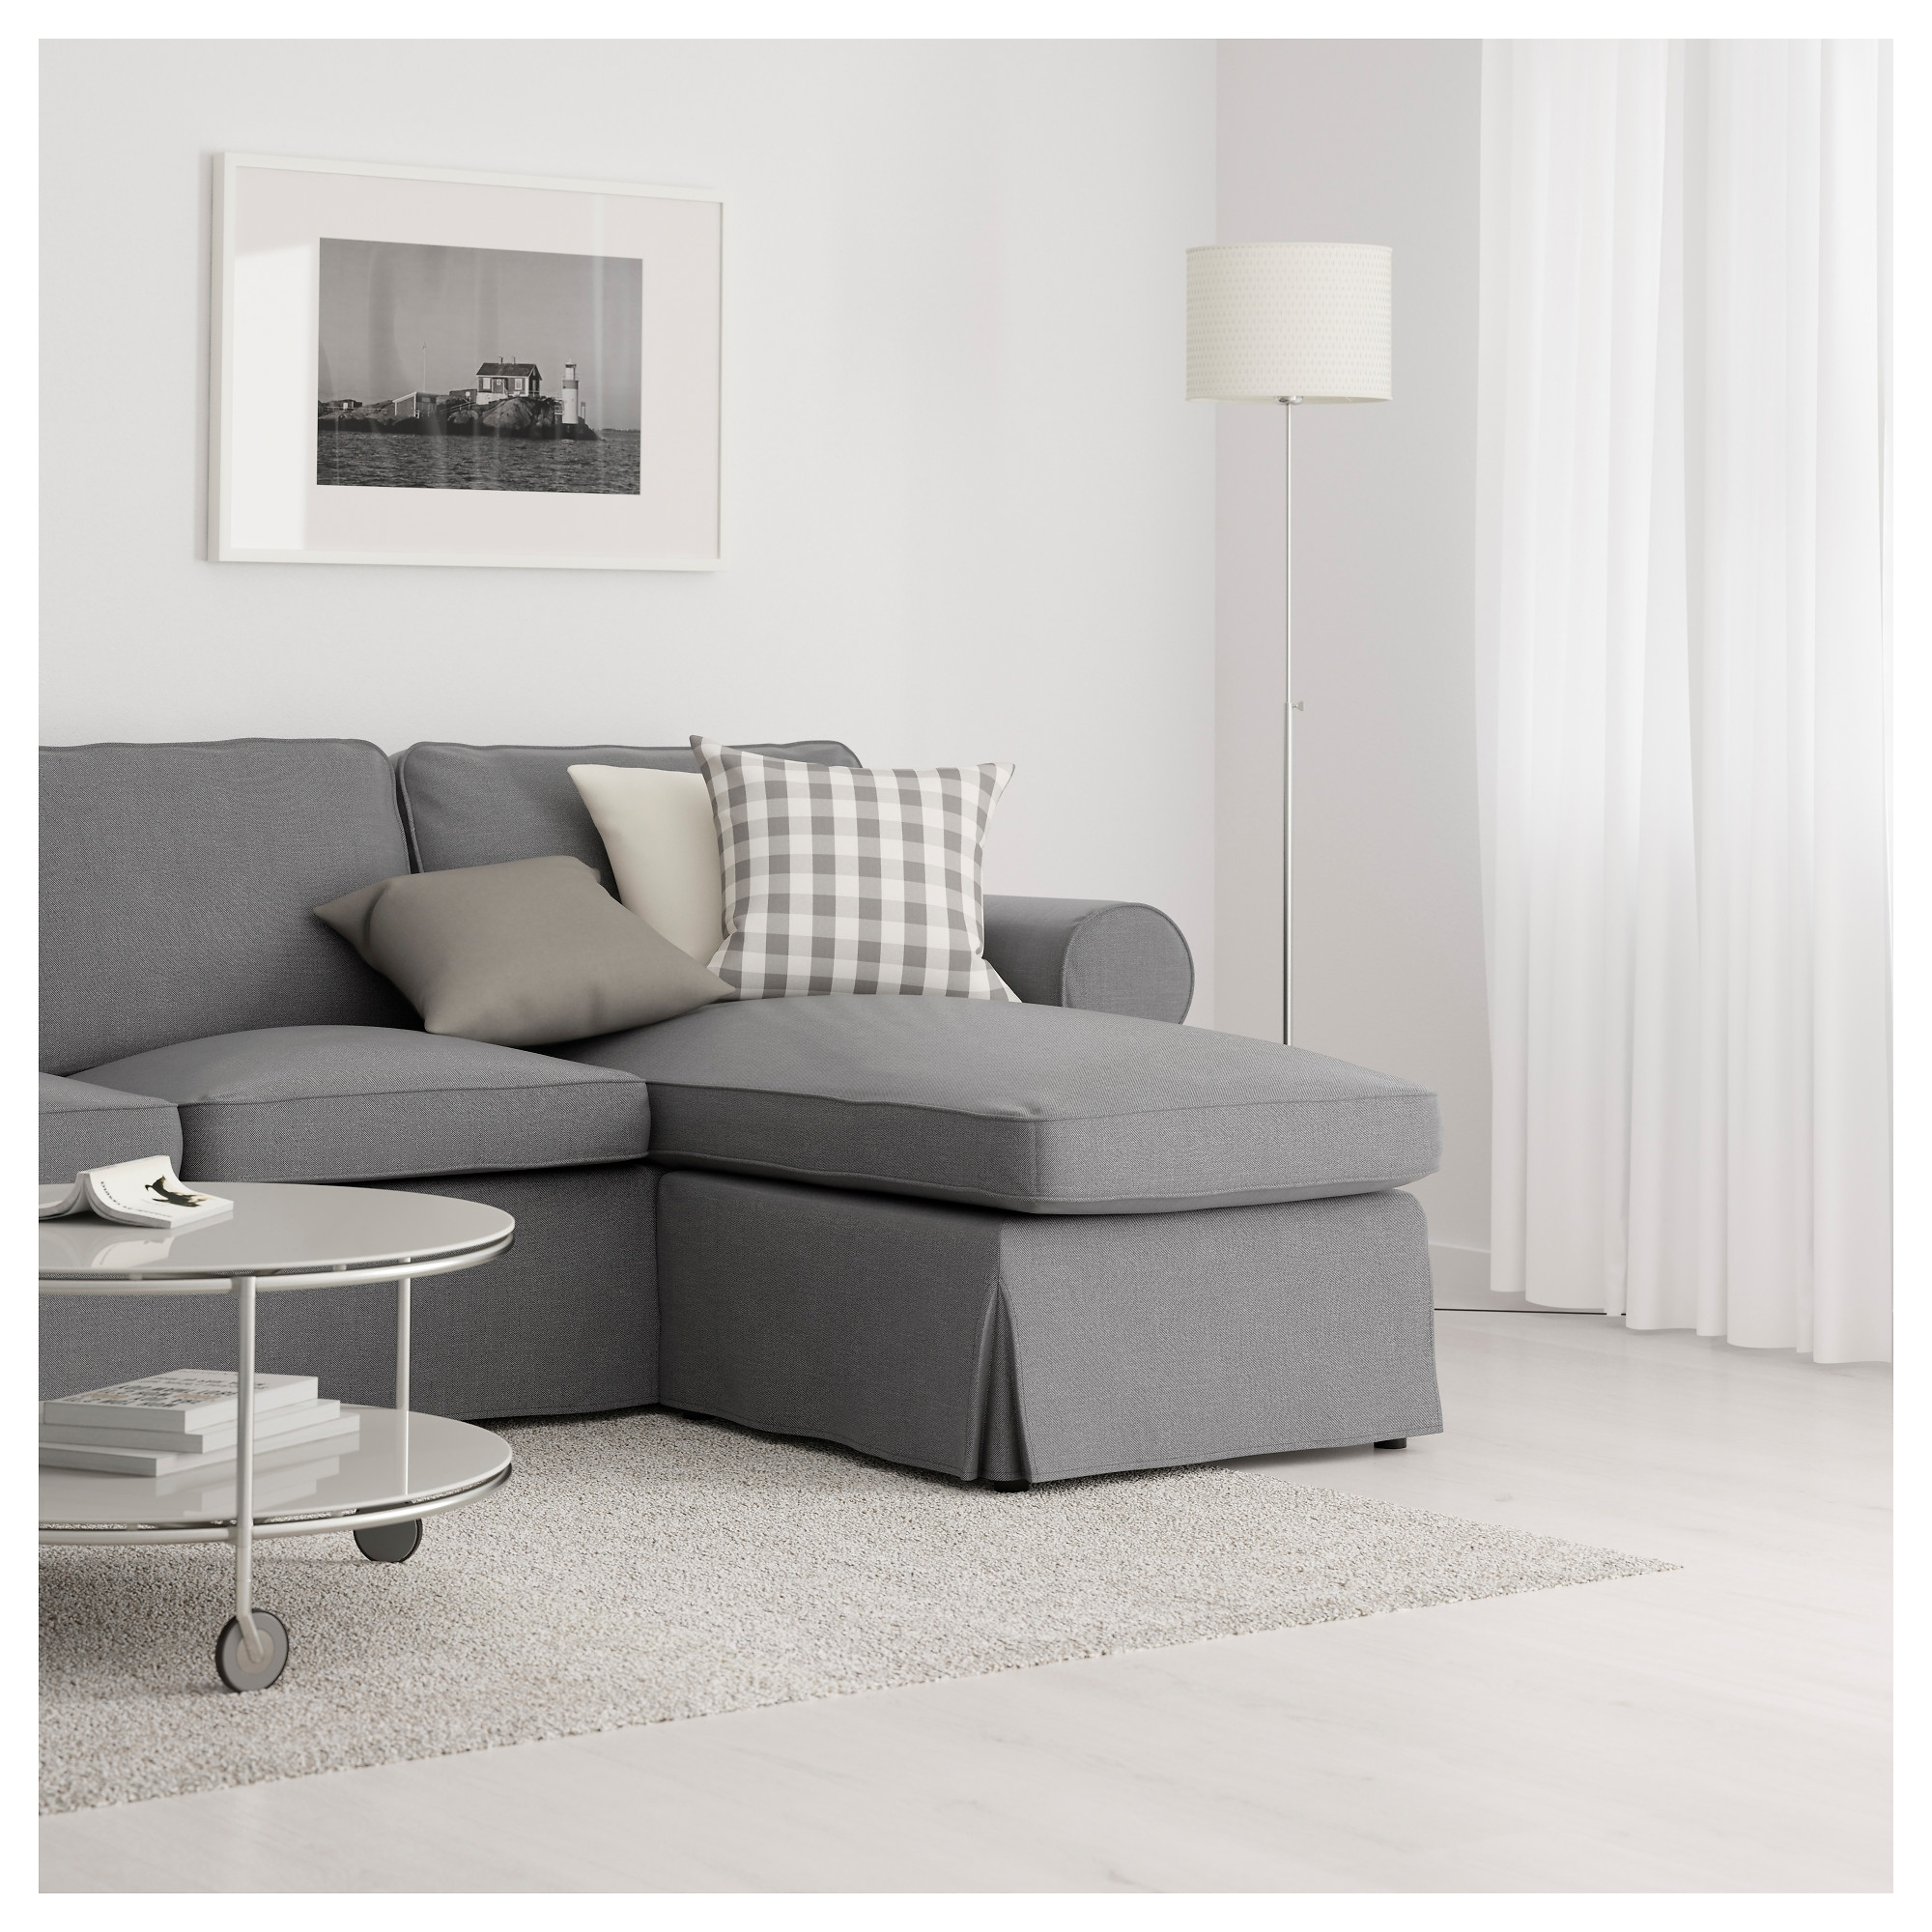 Ektorp 3 Seat Sofa With Chaise Longue/nordvalla Dark Grey – Ikea In Preferred Ektorp Chaises (View 11 of 15)